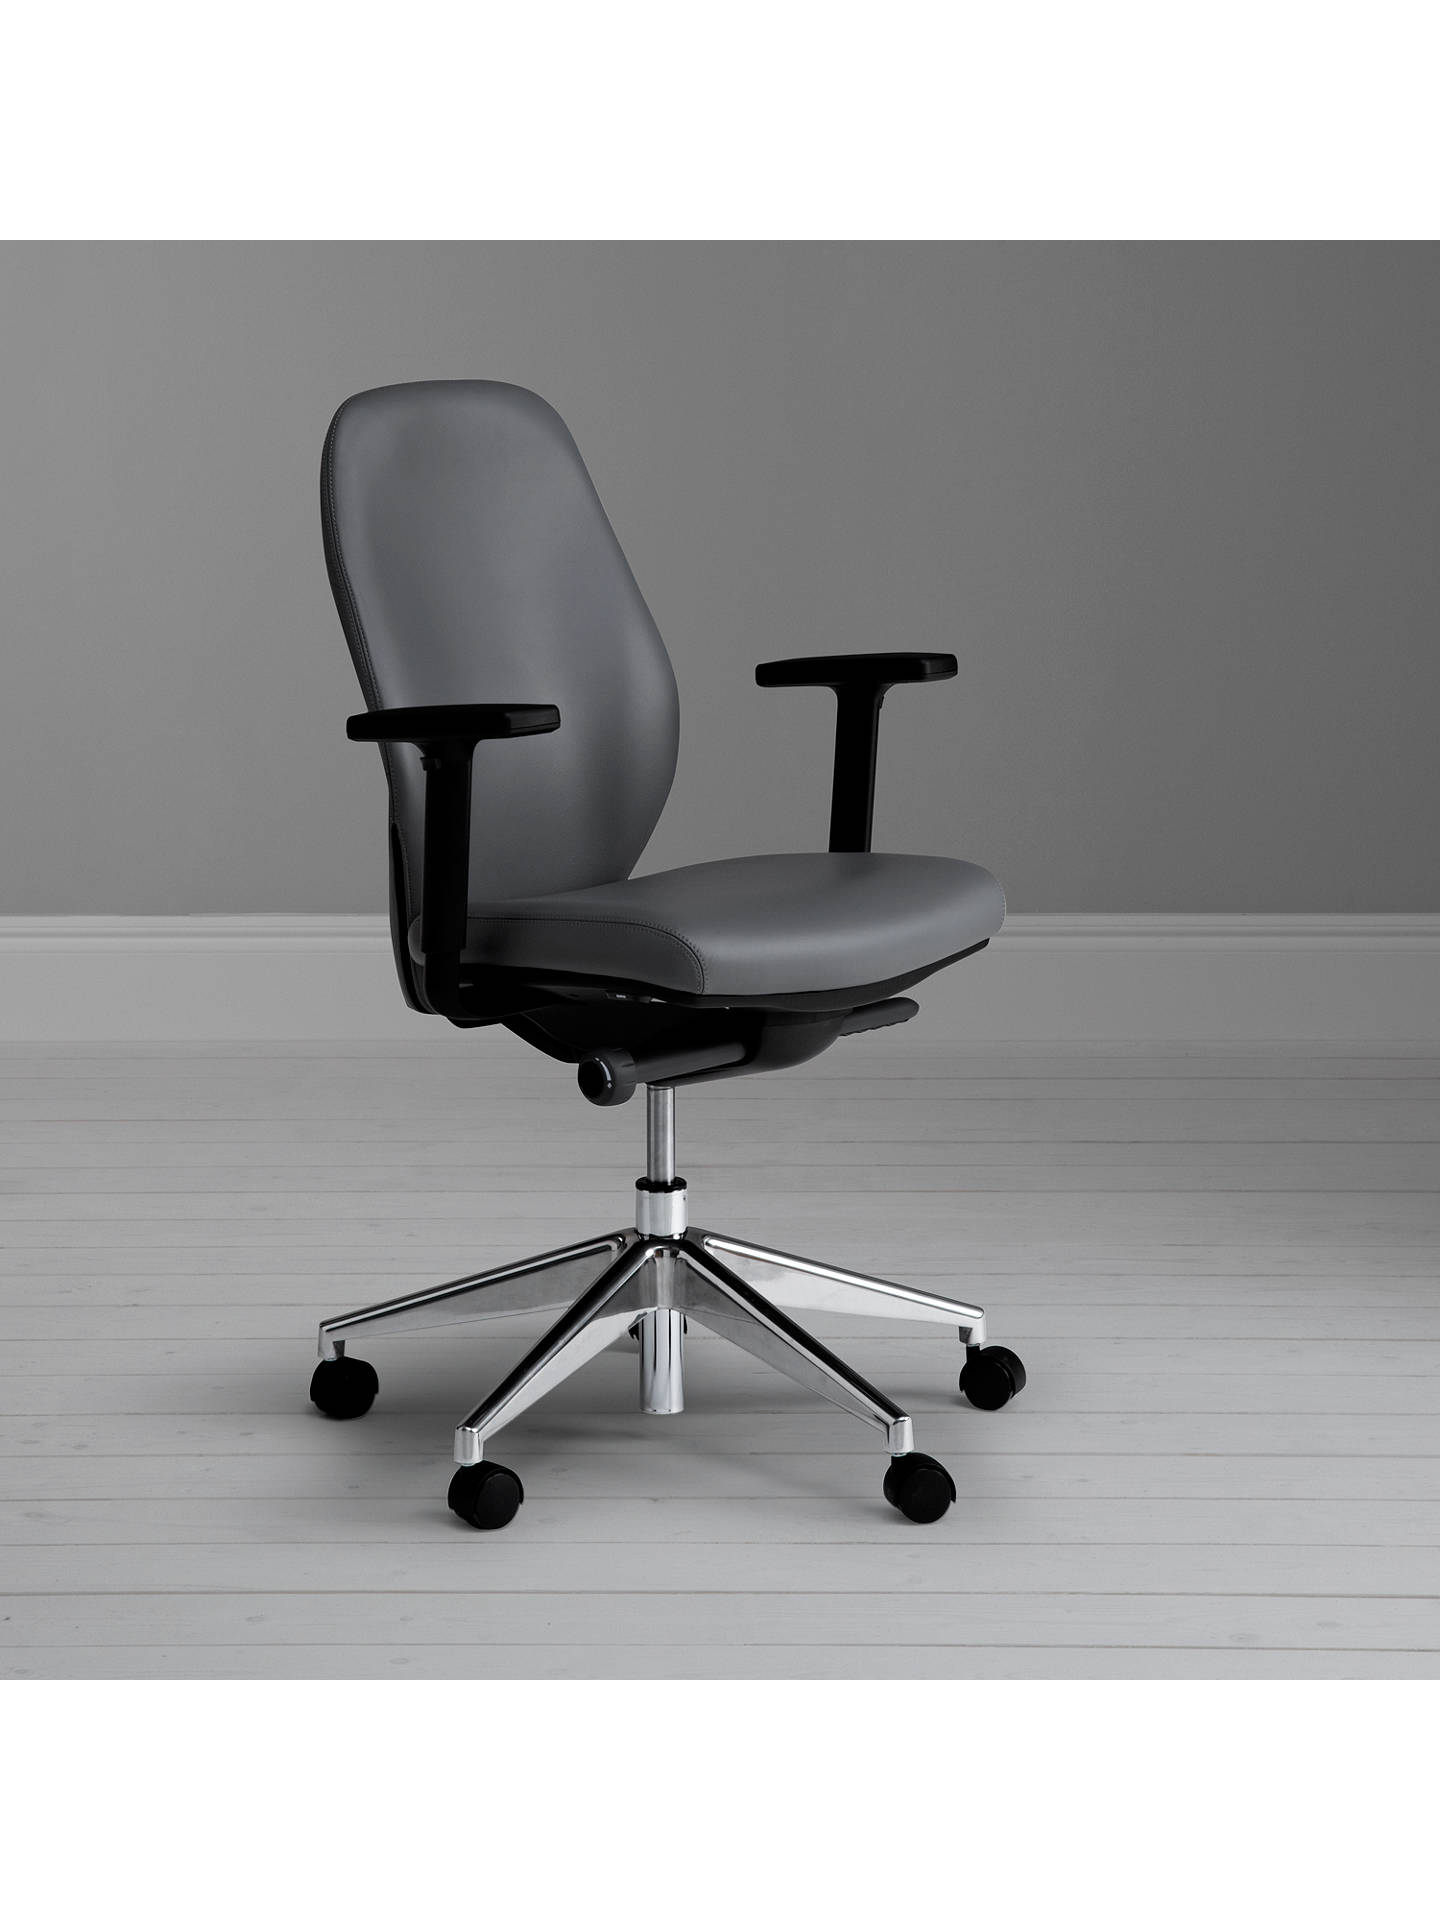 Boss design sona leather office chair at john lewis partners for John lewis home design service reviews